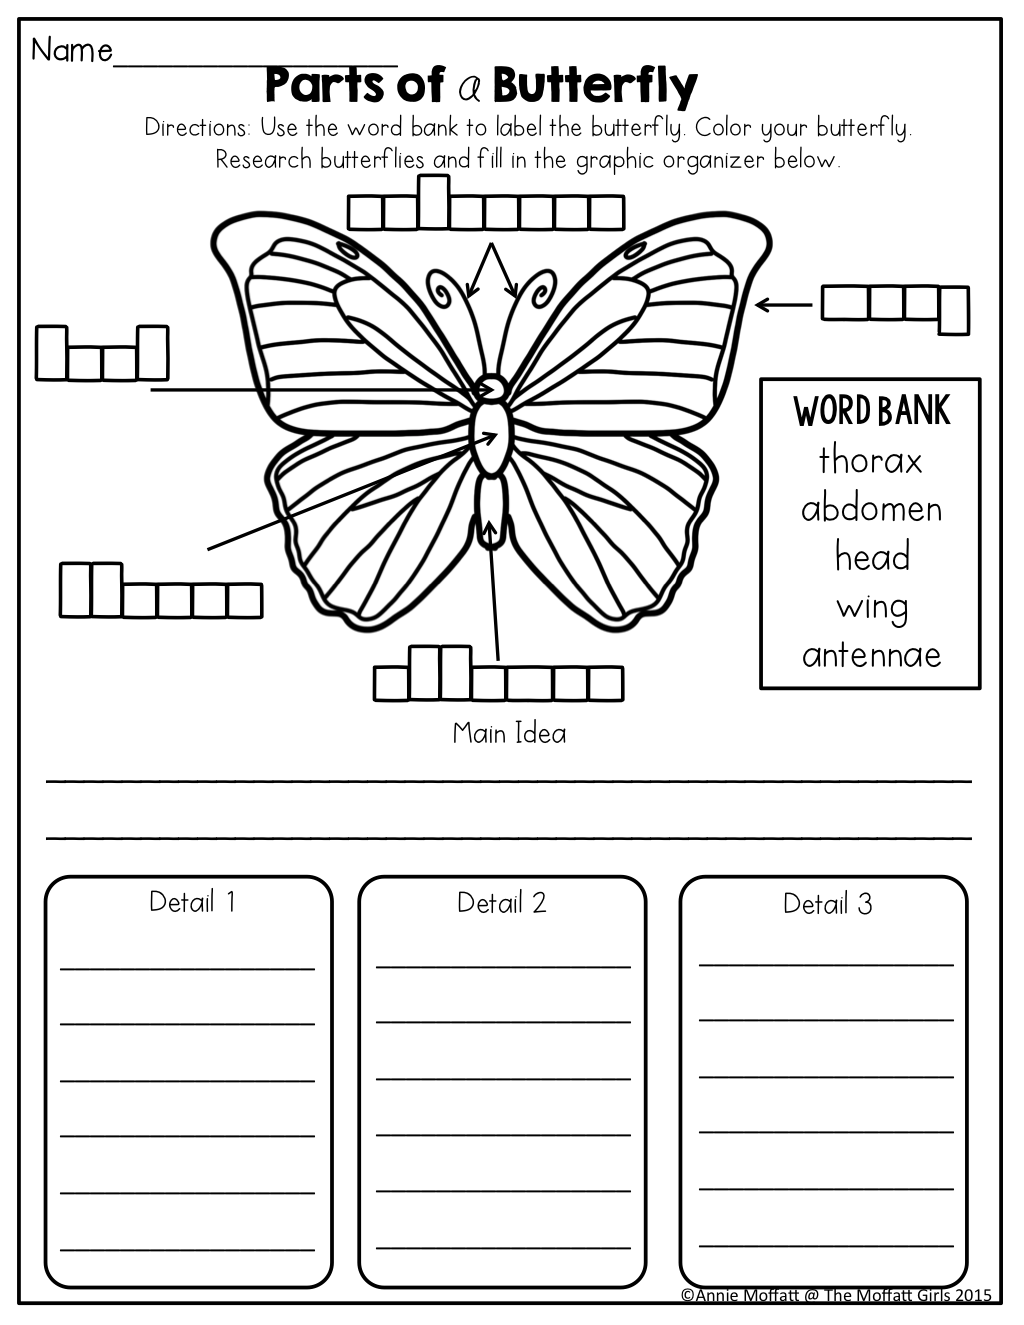 Butterfly Body Parts Worksheet Pictures To Pin On